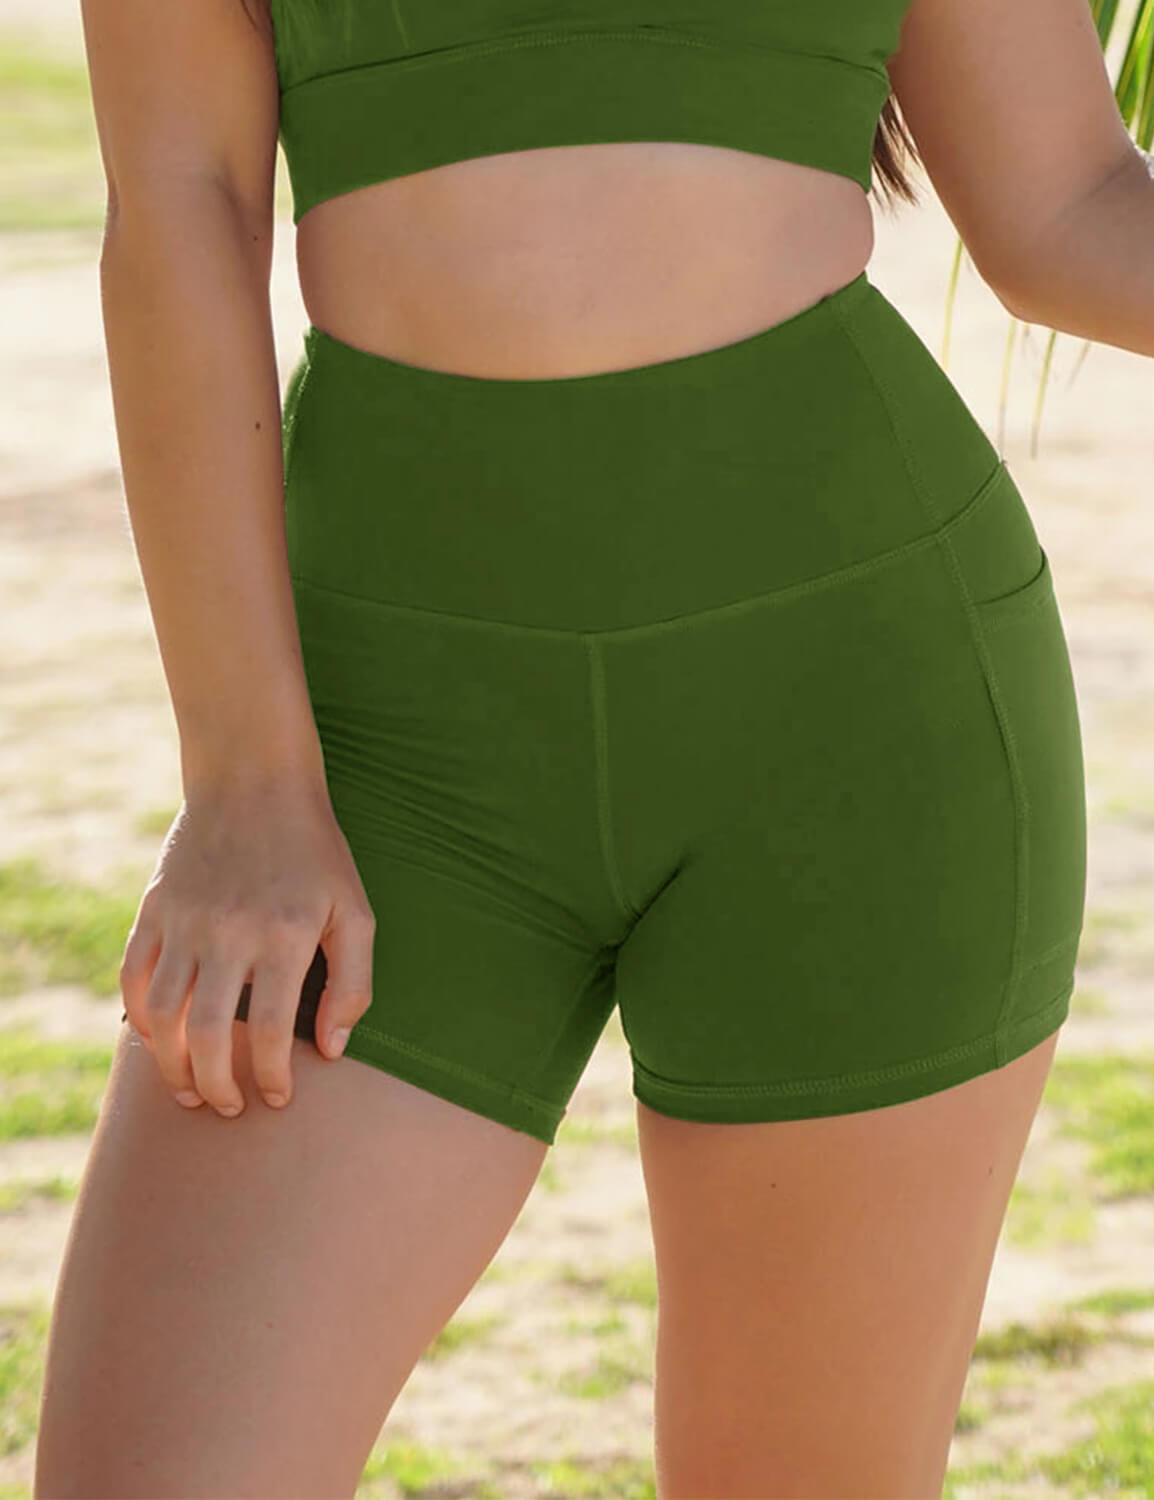 Blooming Jelly_High Waist Side Pockets Biker Shorts_Green_253047_10_Women Athletic High Elascity Workout_Bottoms_Shorts